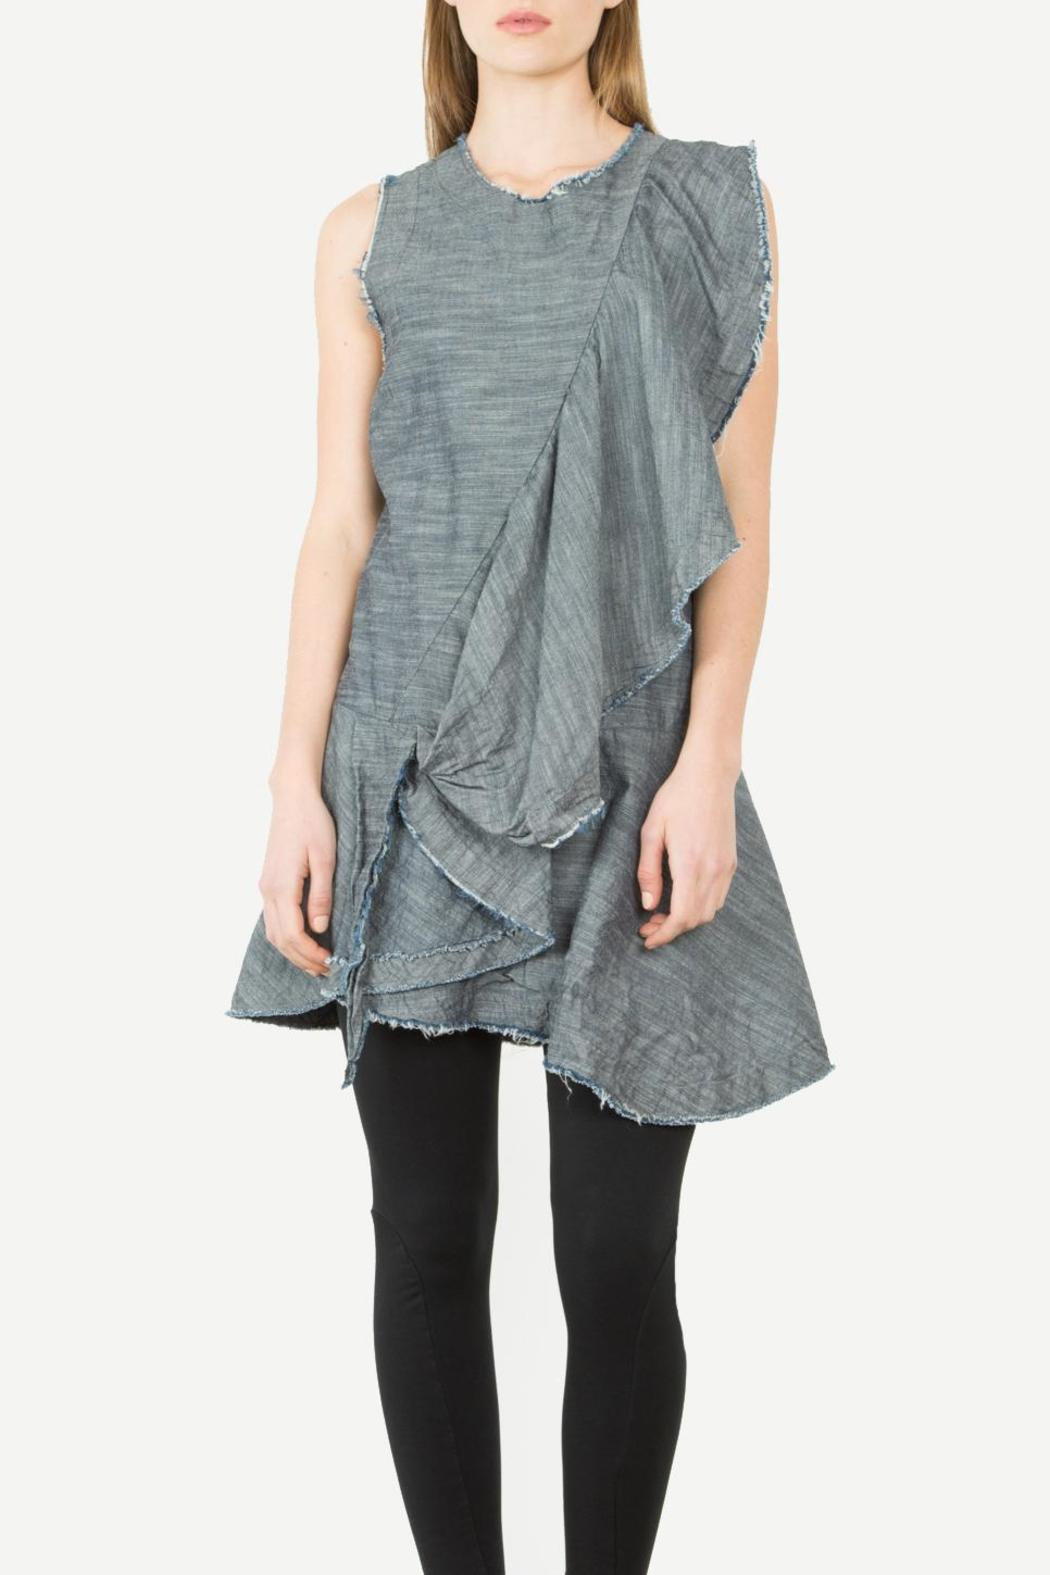 Prairie Underground Crackwillow Tunic Dress - Main Image